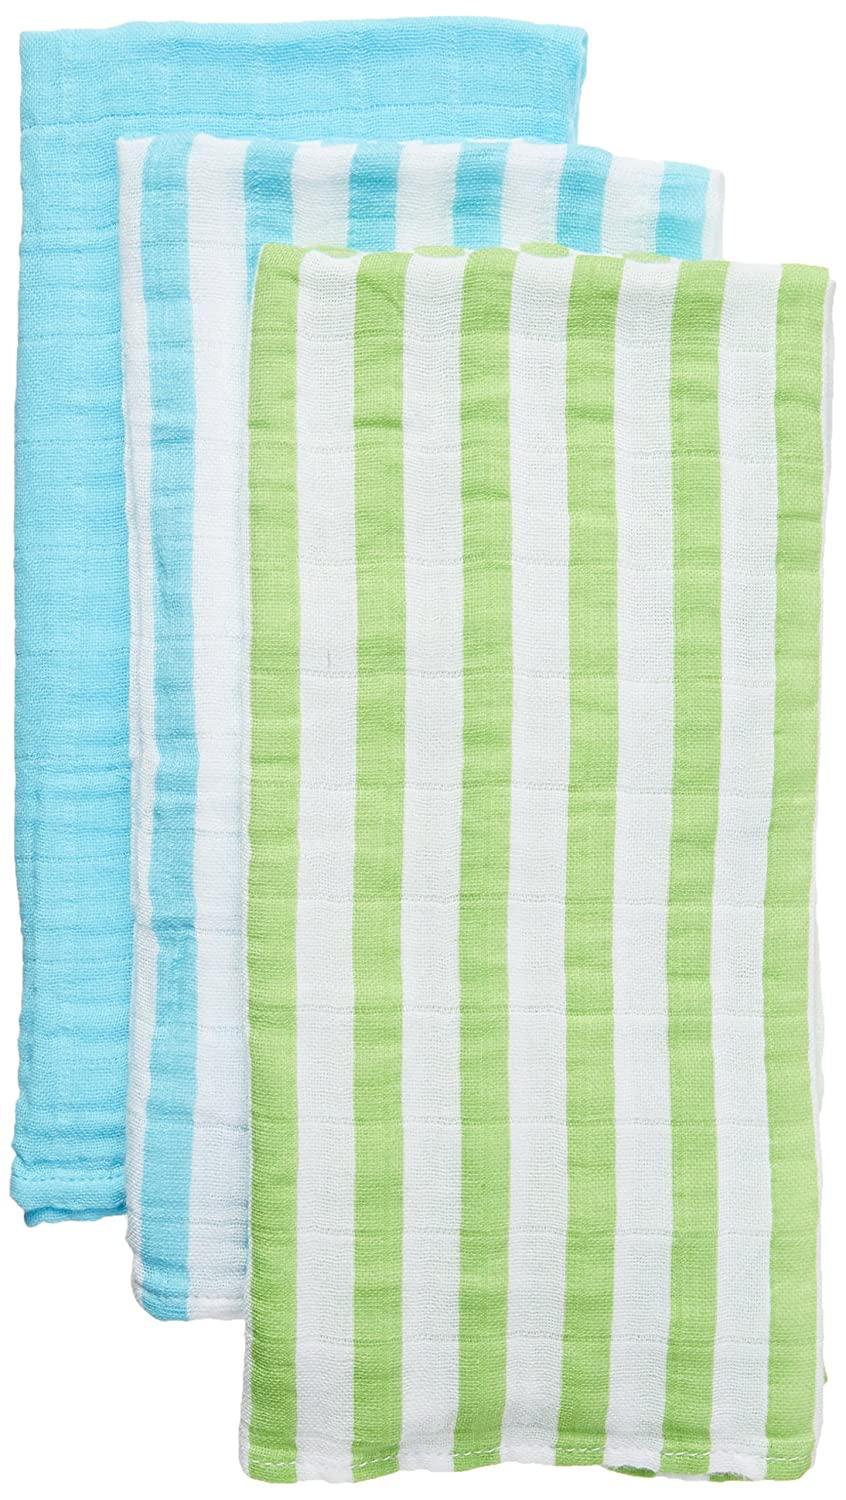 green sprouts 3 Piece Muslin Burp Cloths Made from Organic Cotton Blue Set